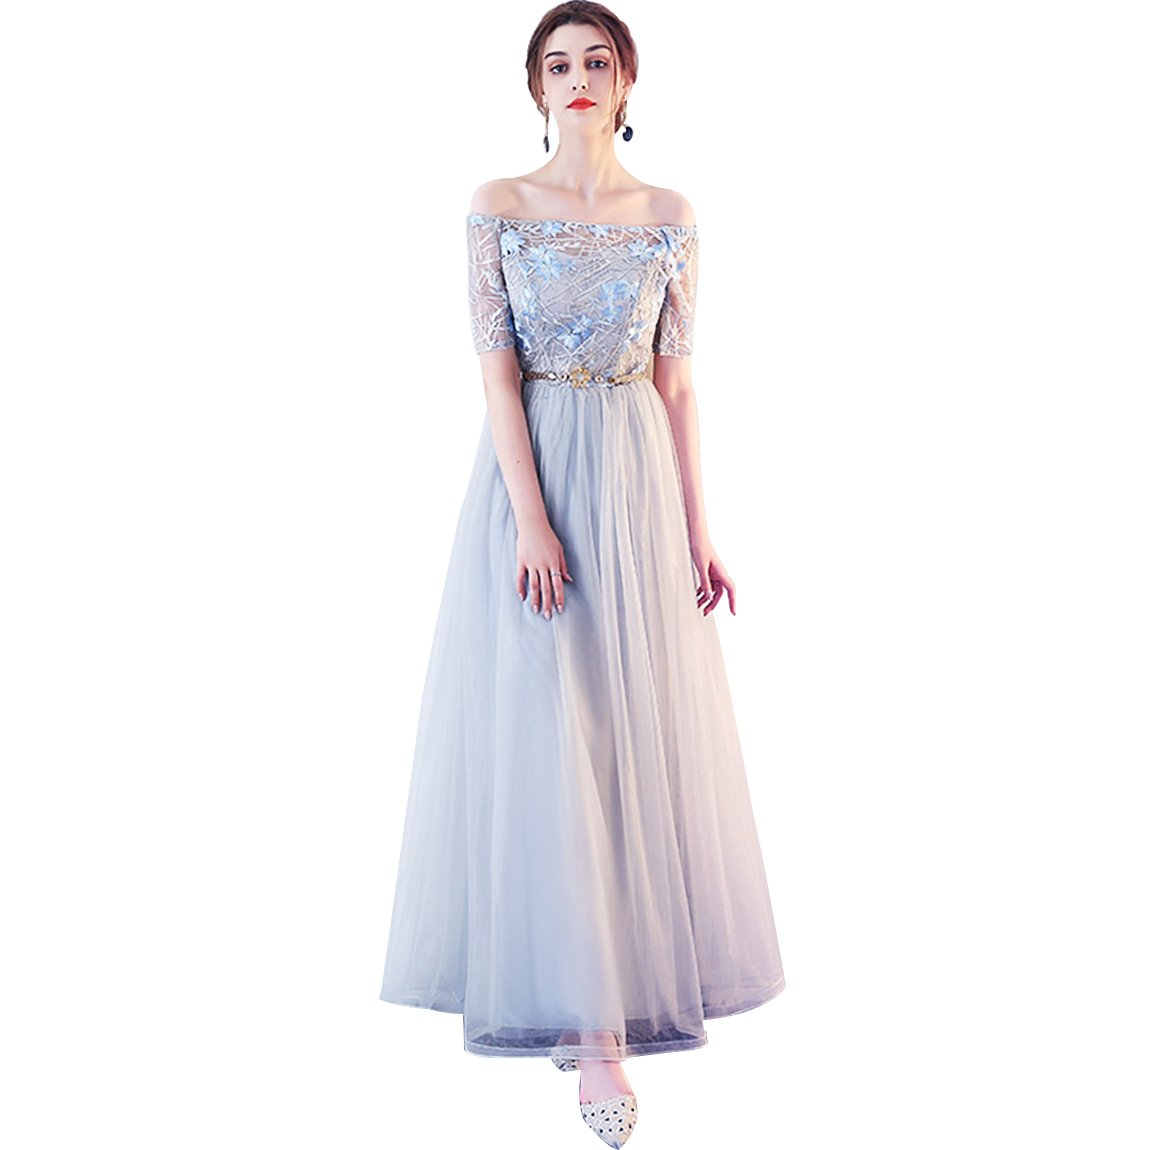 18cf01c8830c1 MAIN FEATURE - This prom dresses long 100% Brand New with high quality  tulle fabric with lace applique embellished Concealed lace-up at the  back Built-in ...